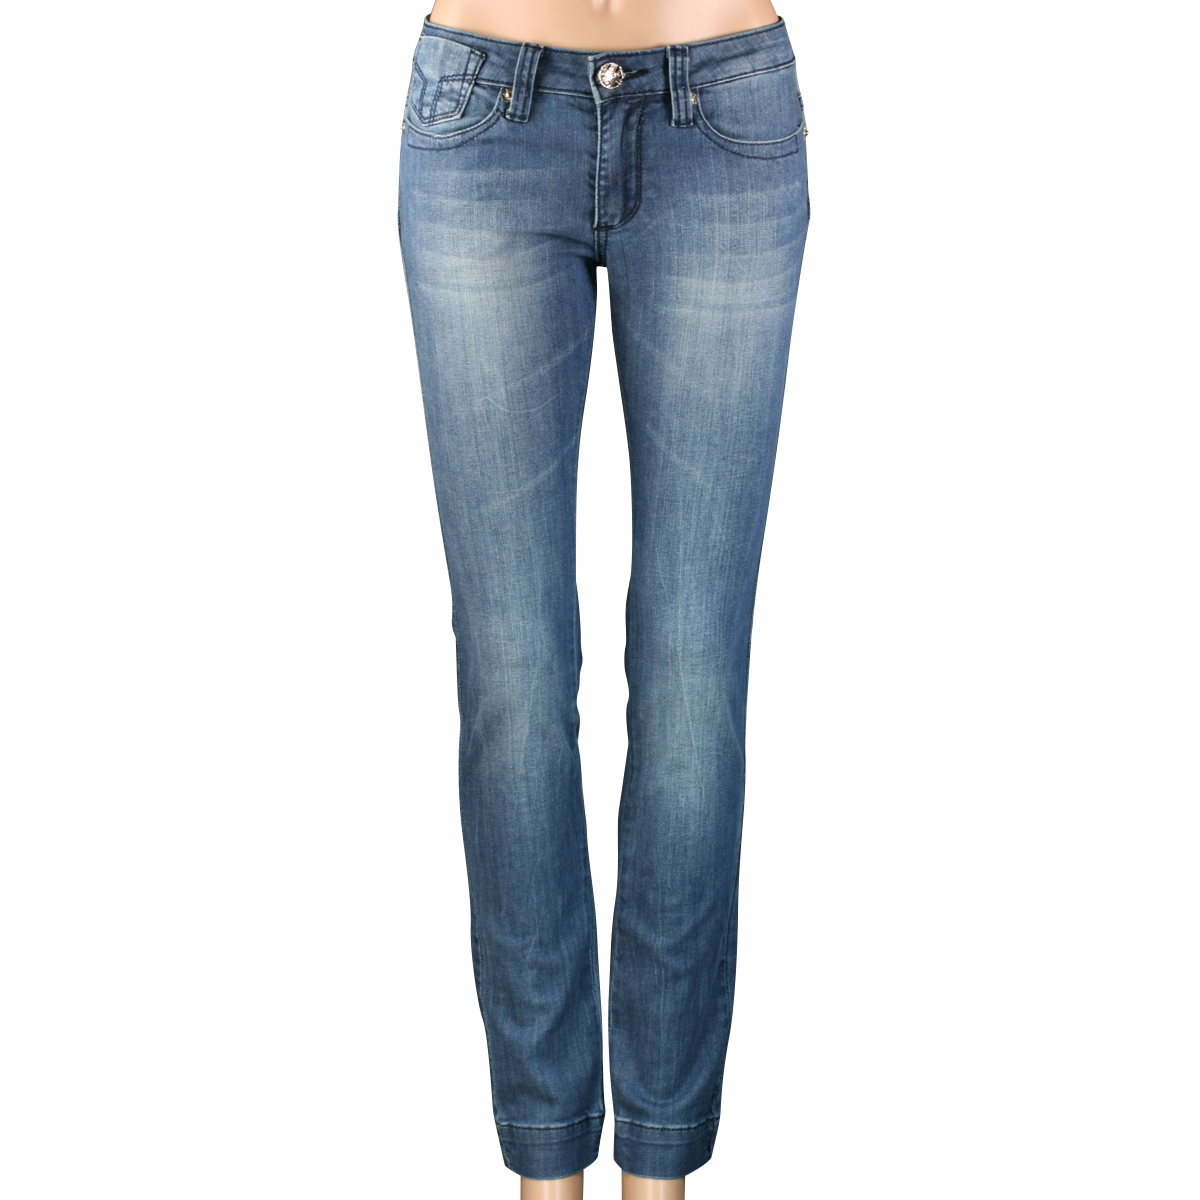 SHOEZY-womens-Slim-Fit-Skinny-Straight-Blue-Denim-pants-Stretch-Zip-Jeans-AU